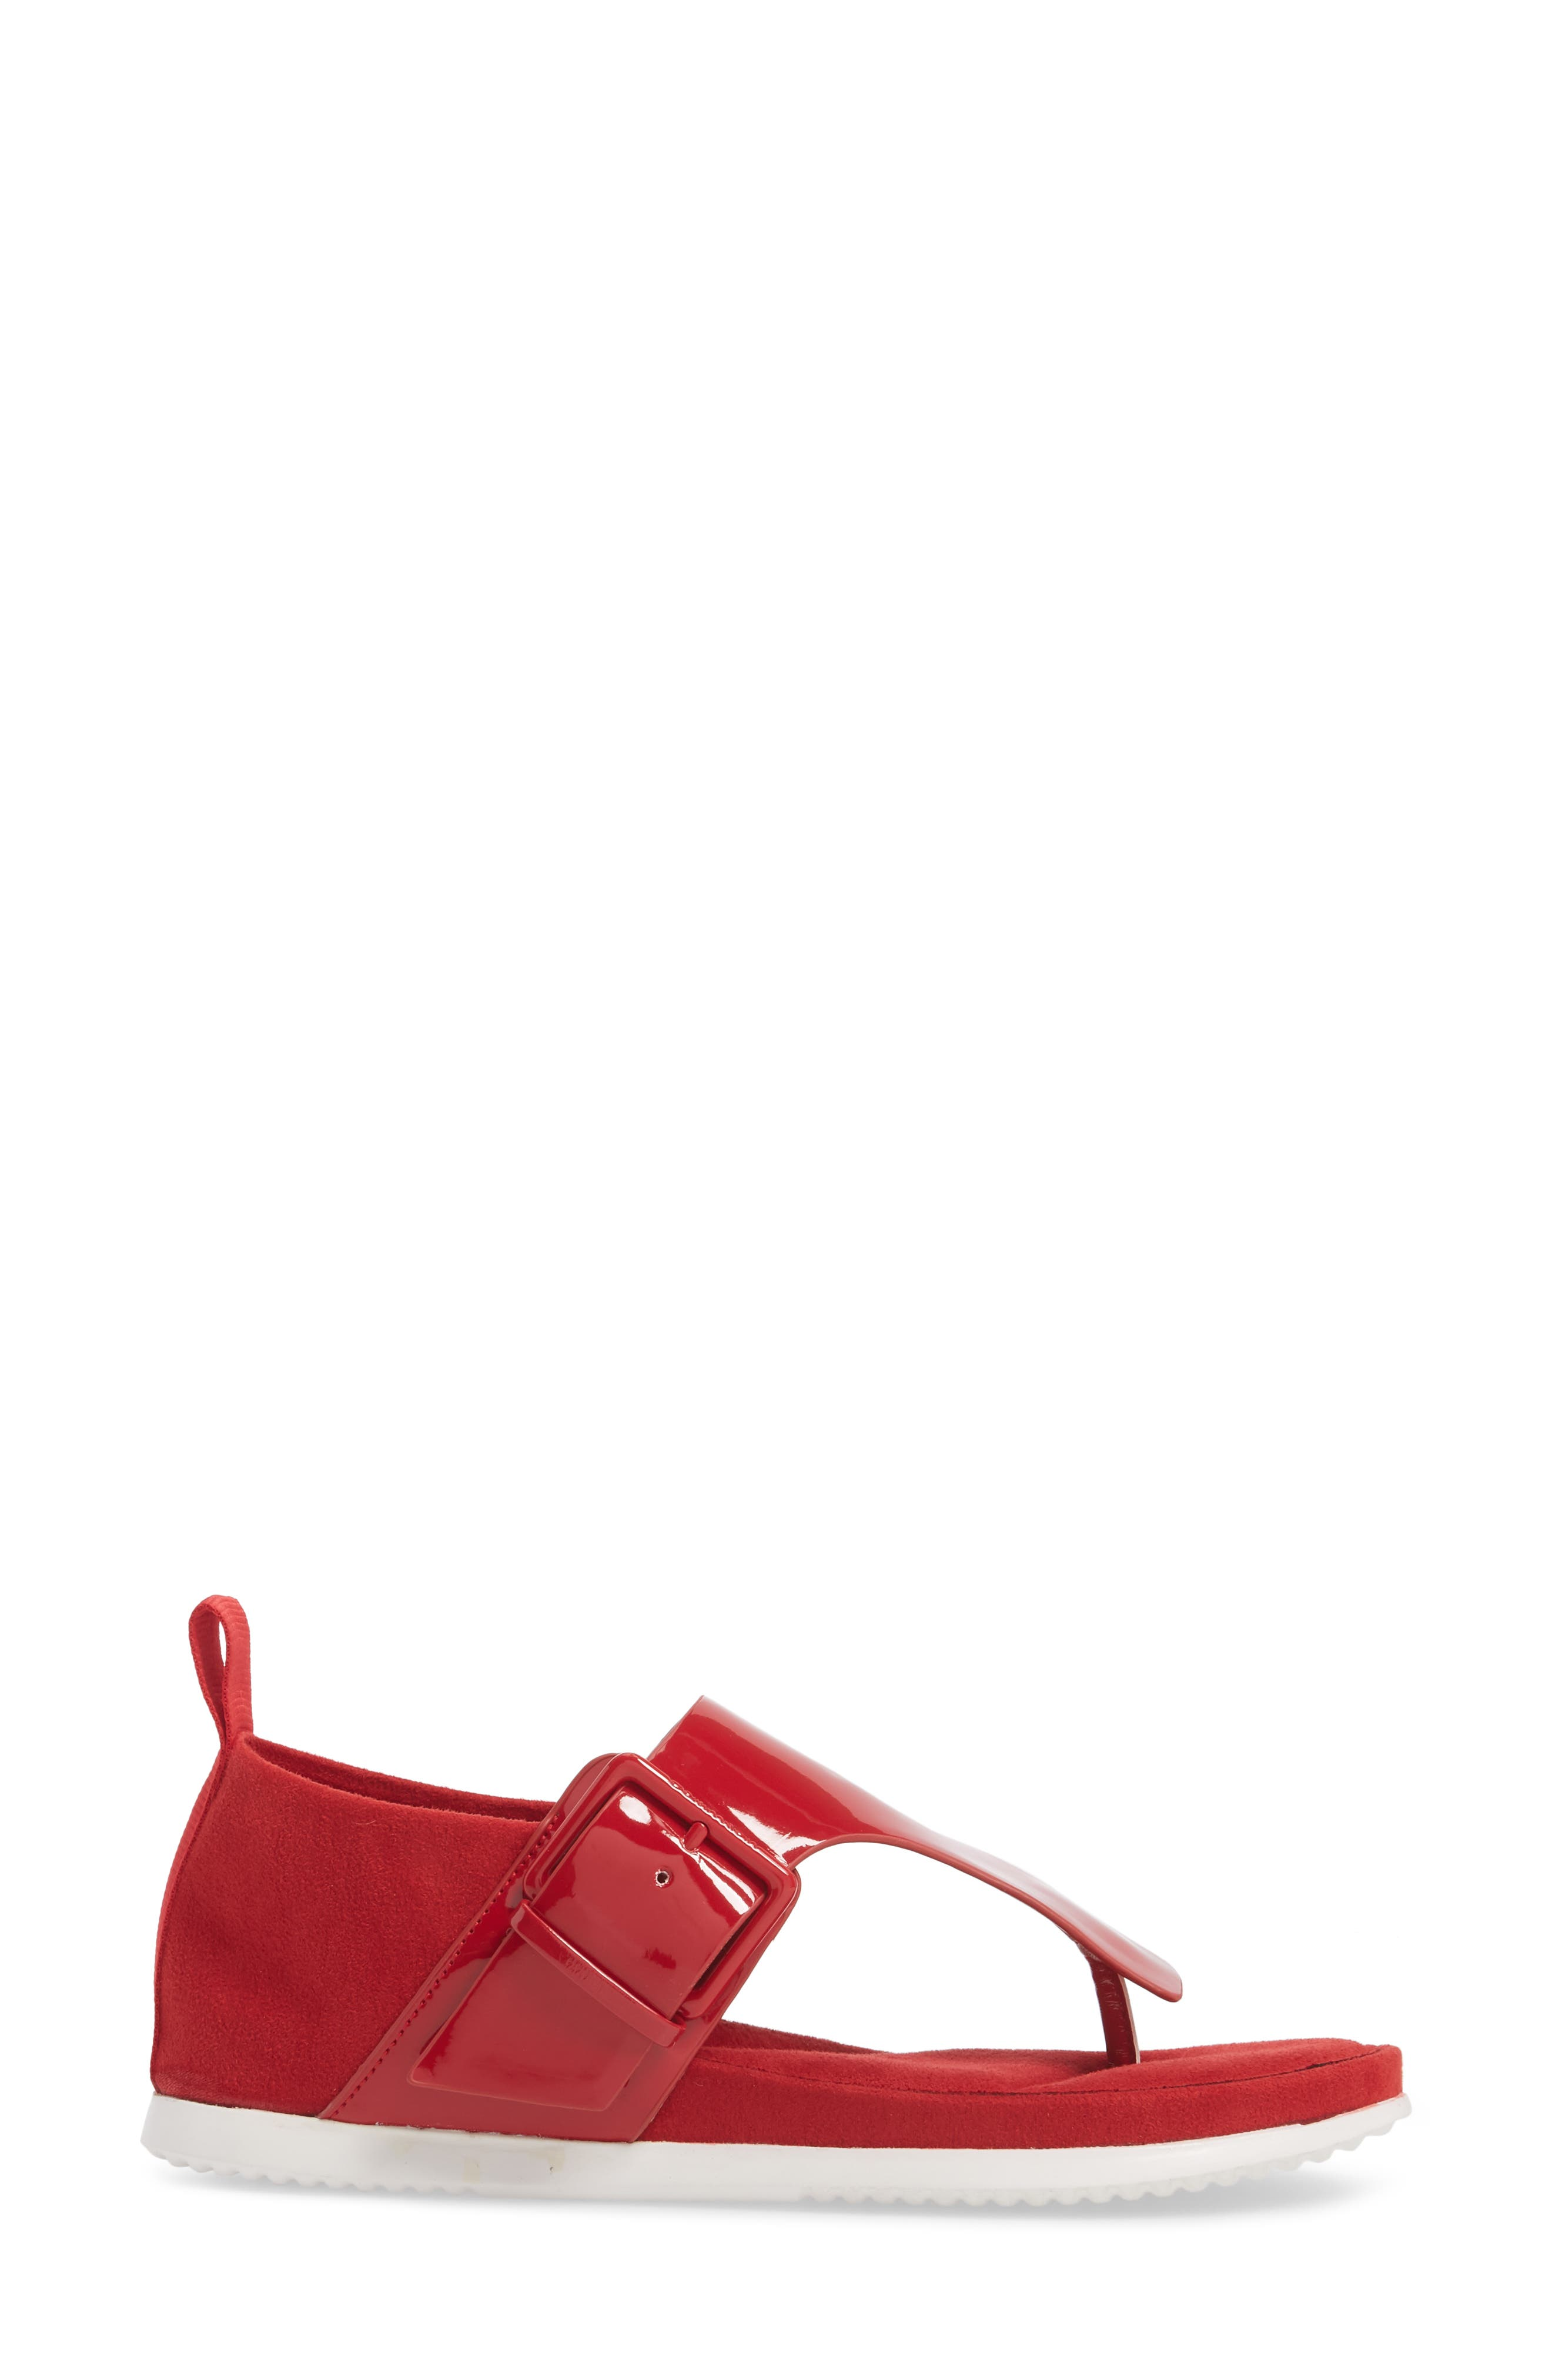 Dionay Wedge Sandal,                             Alternate thumbnail 9, color,